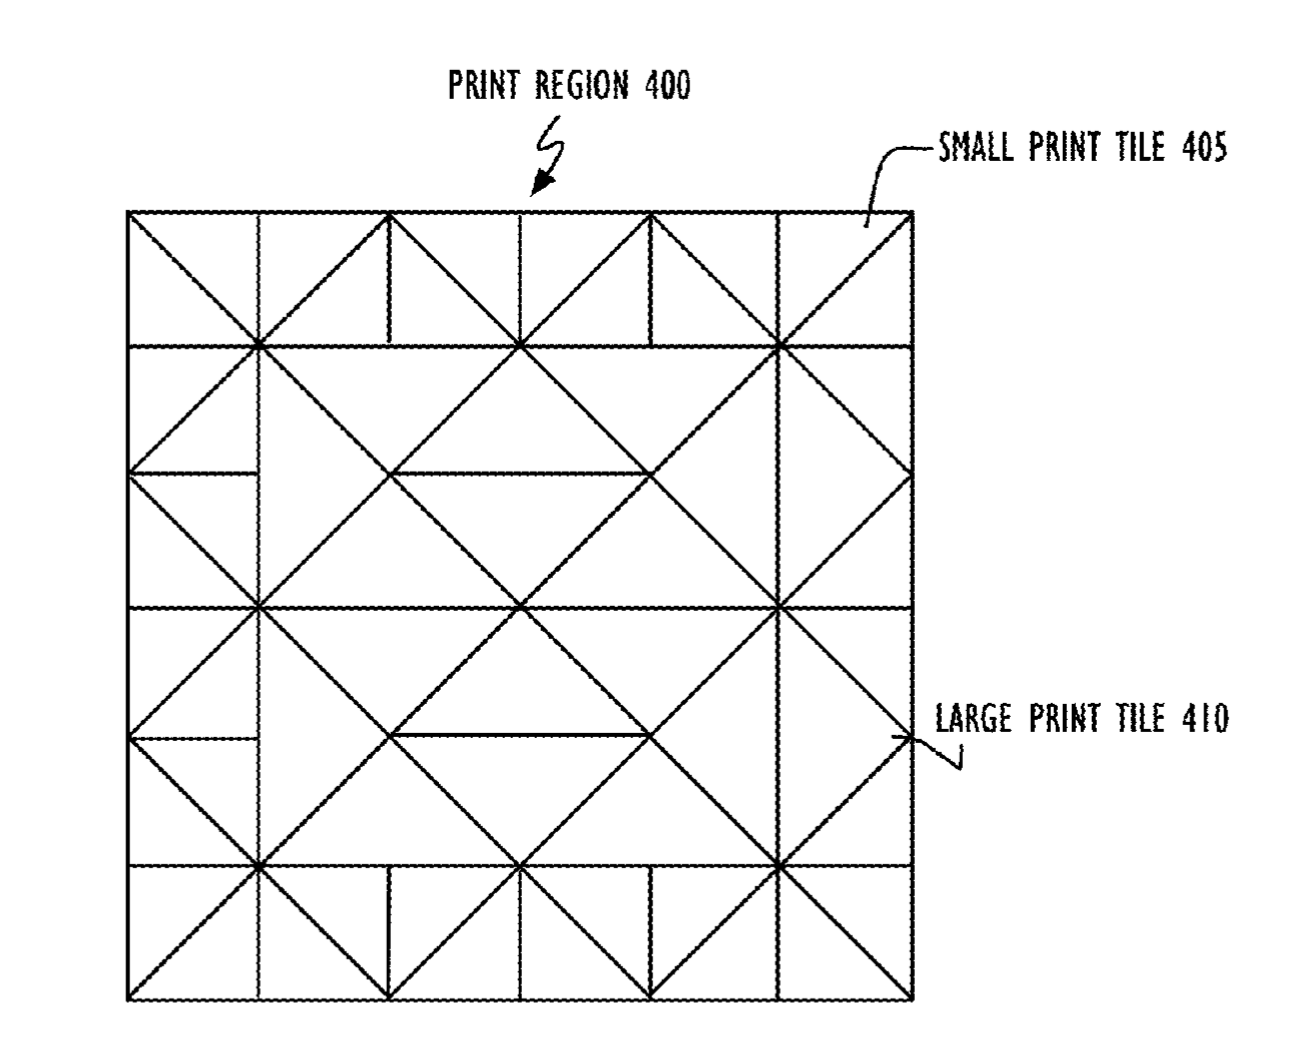 Apple patent shows new way to create 3D printed models